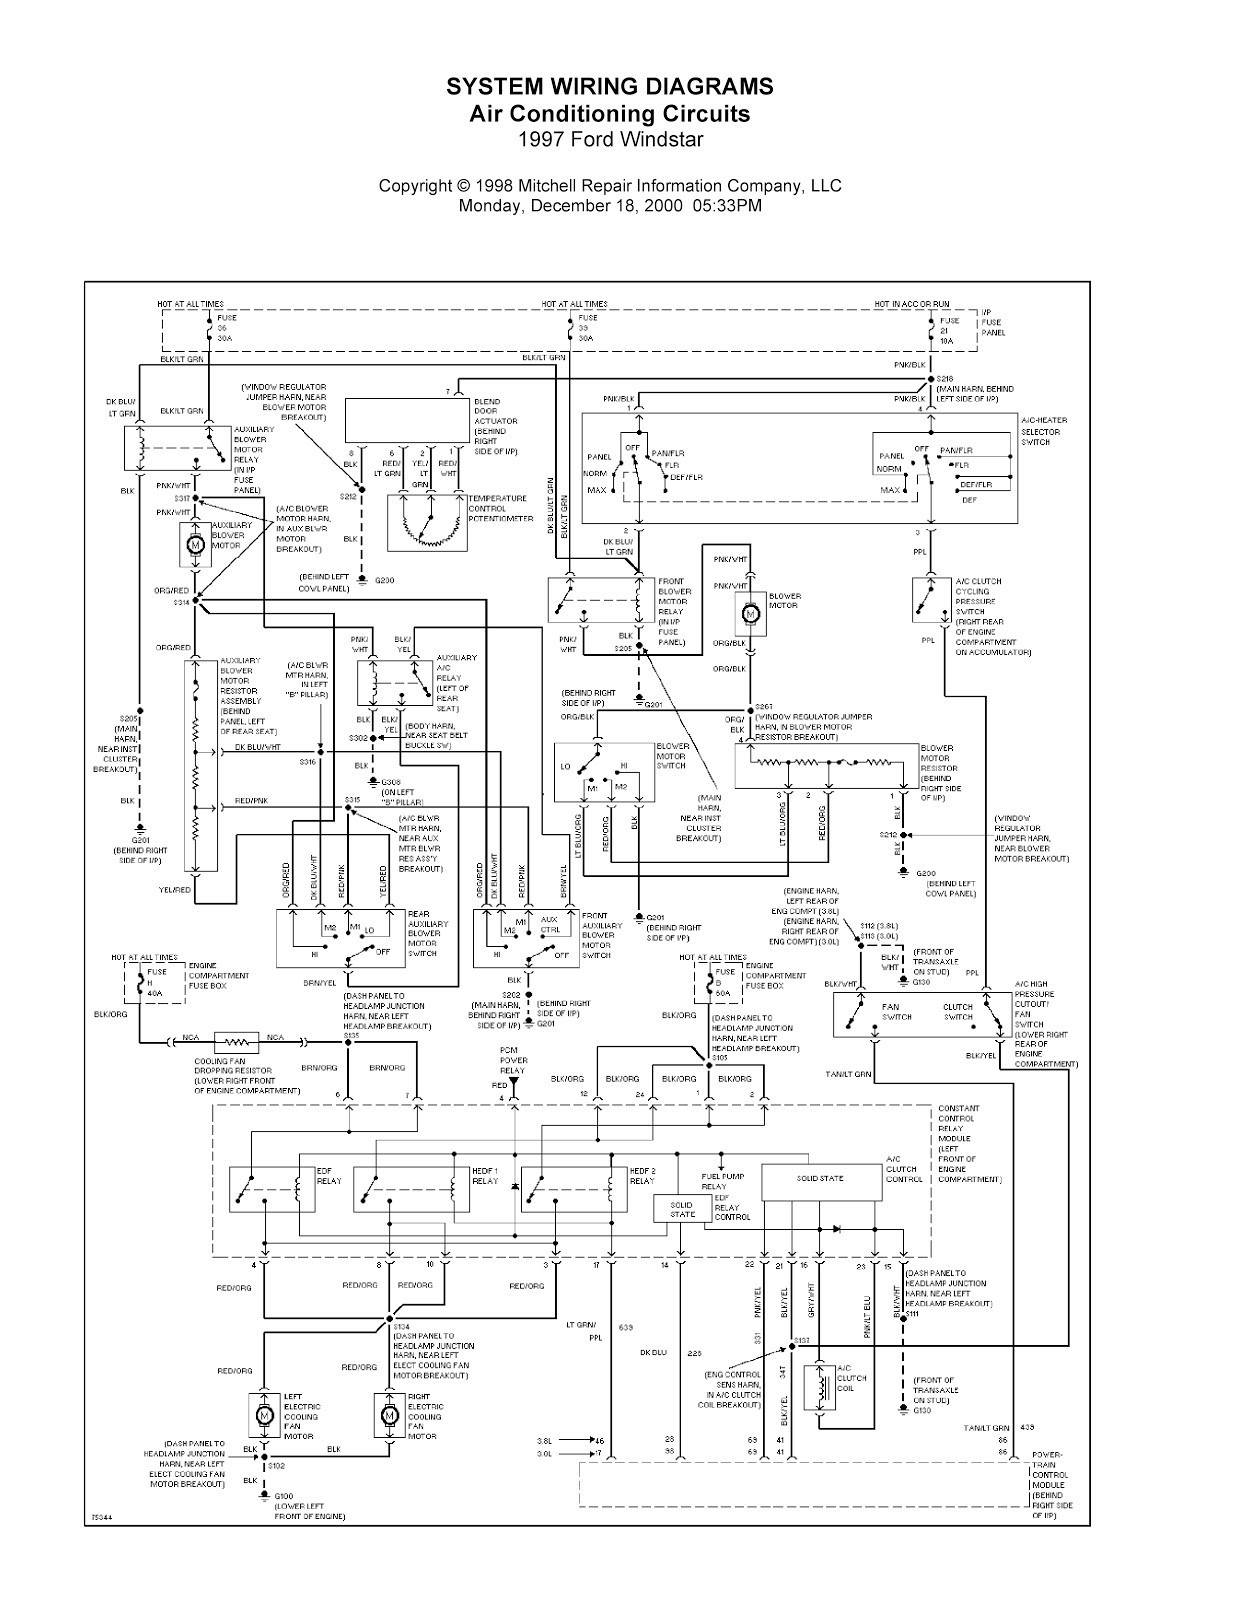 2000 ford expedition alternator wiring diagram 2002 f150 trailer 2003 wire harness best library windstar diagrams f 150 1999